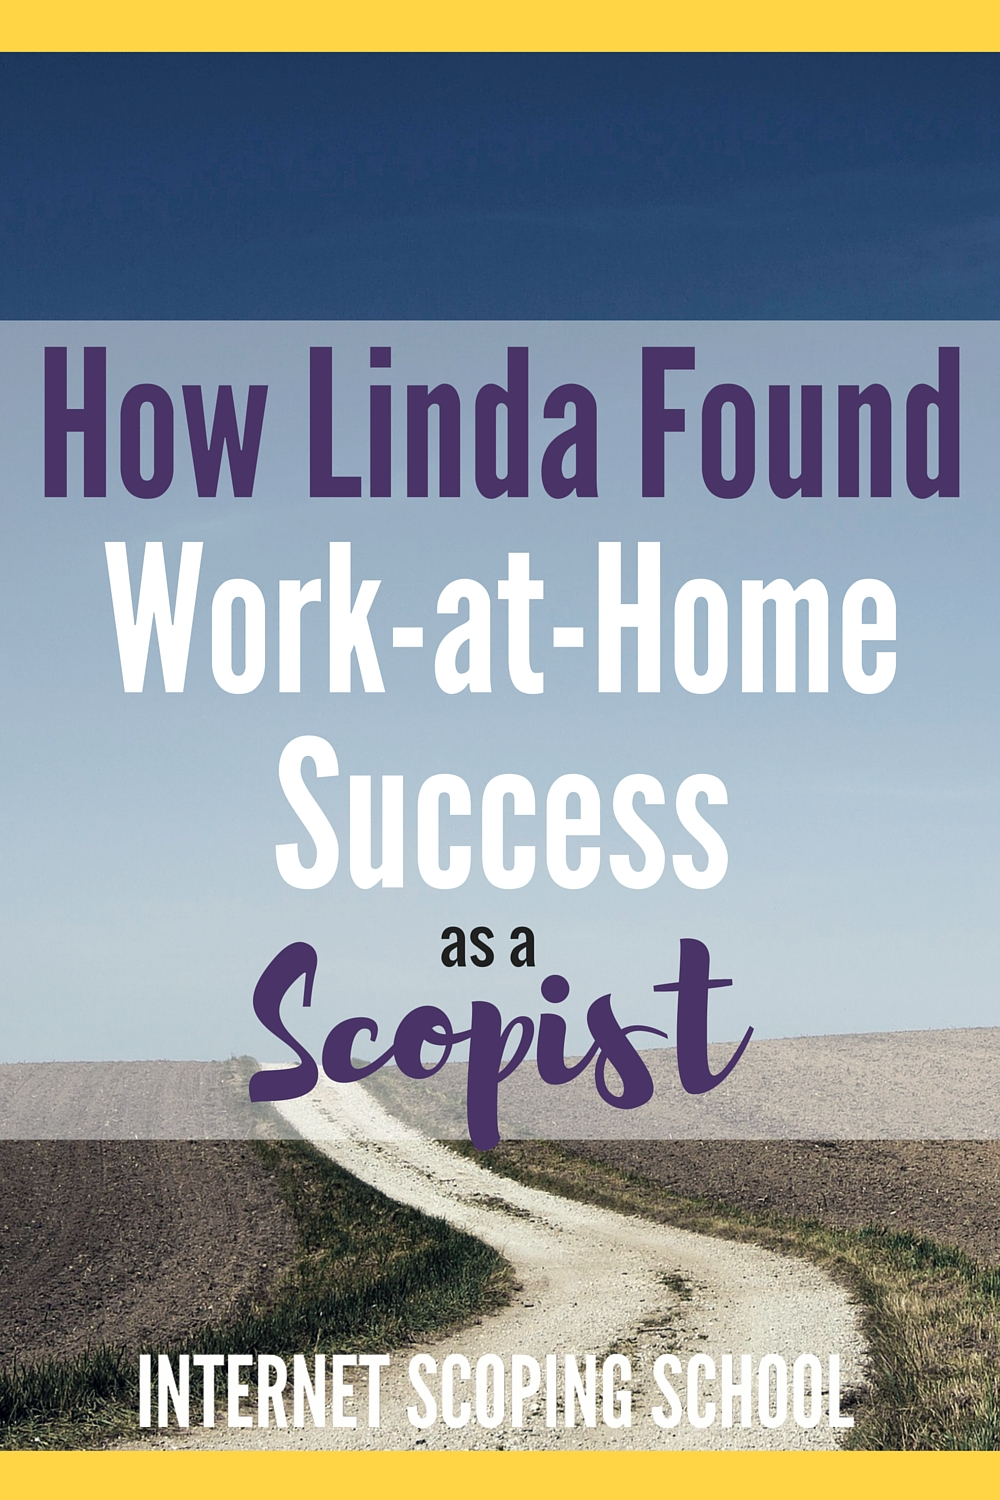 How Linda work-at-home success scoping from home!